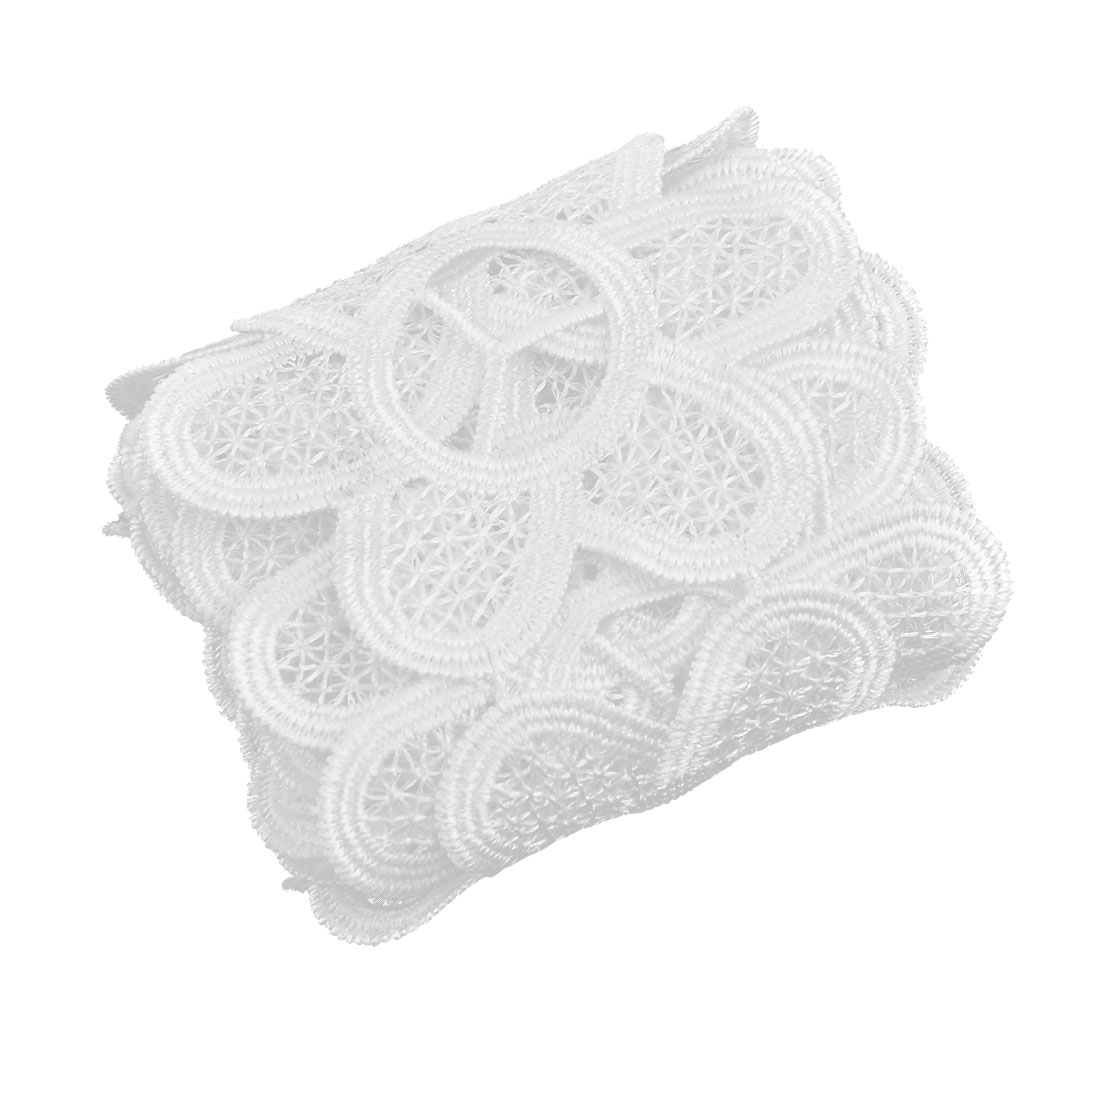 Home Polyester Hollow Out DIY Craft Sewing Lace Trim Embroidered White 2.2 Yards